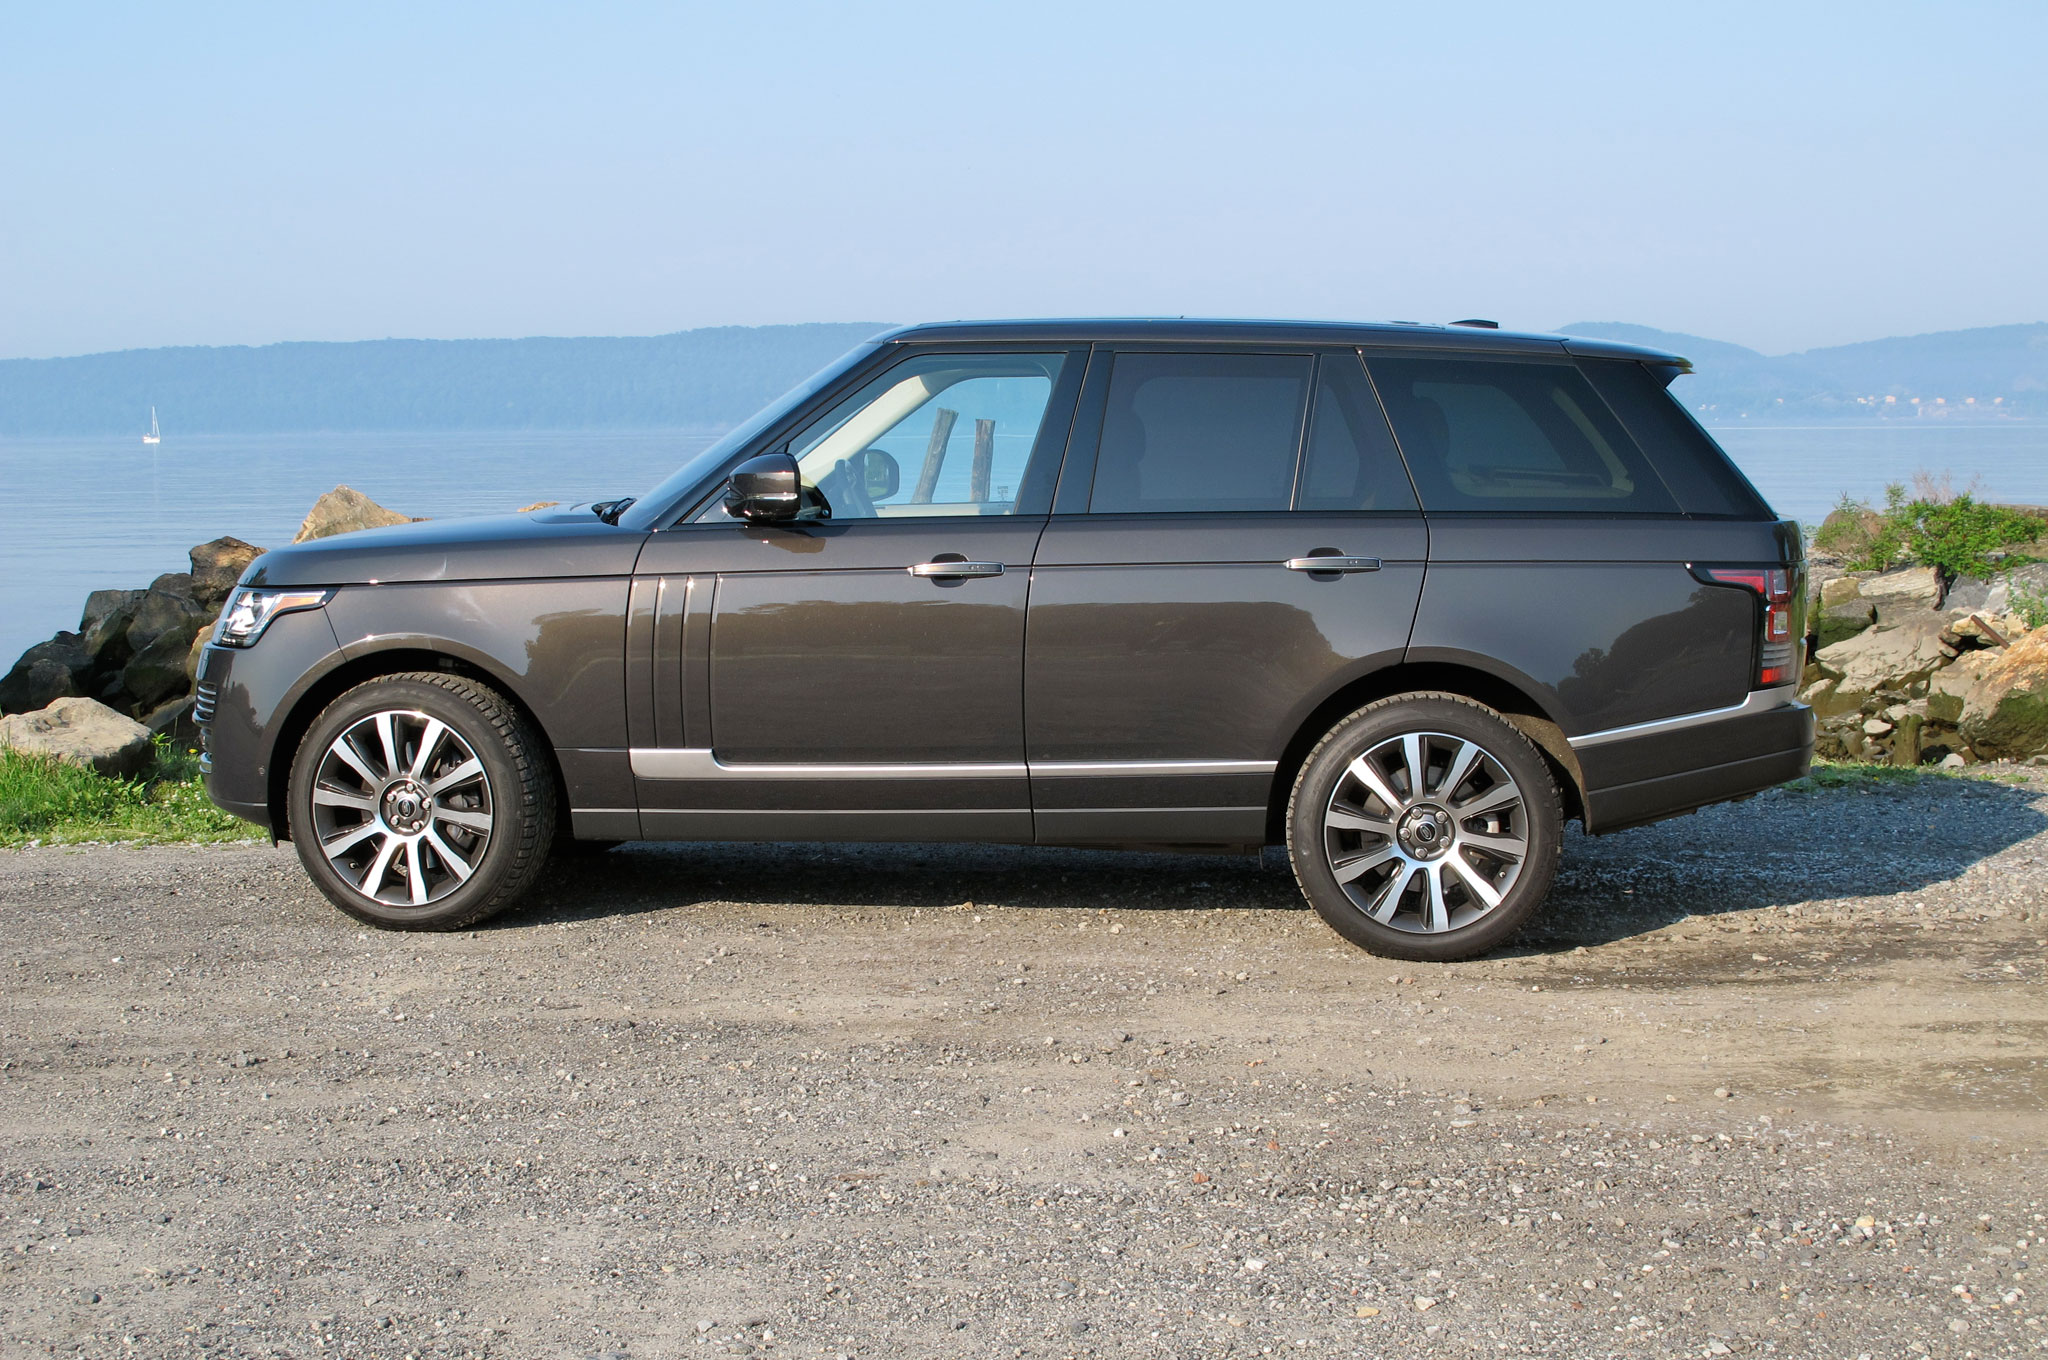 2013 Land Rover Range Rover Supercharged Driven Automobile Magazine